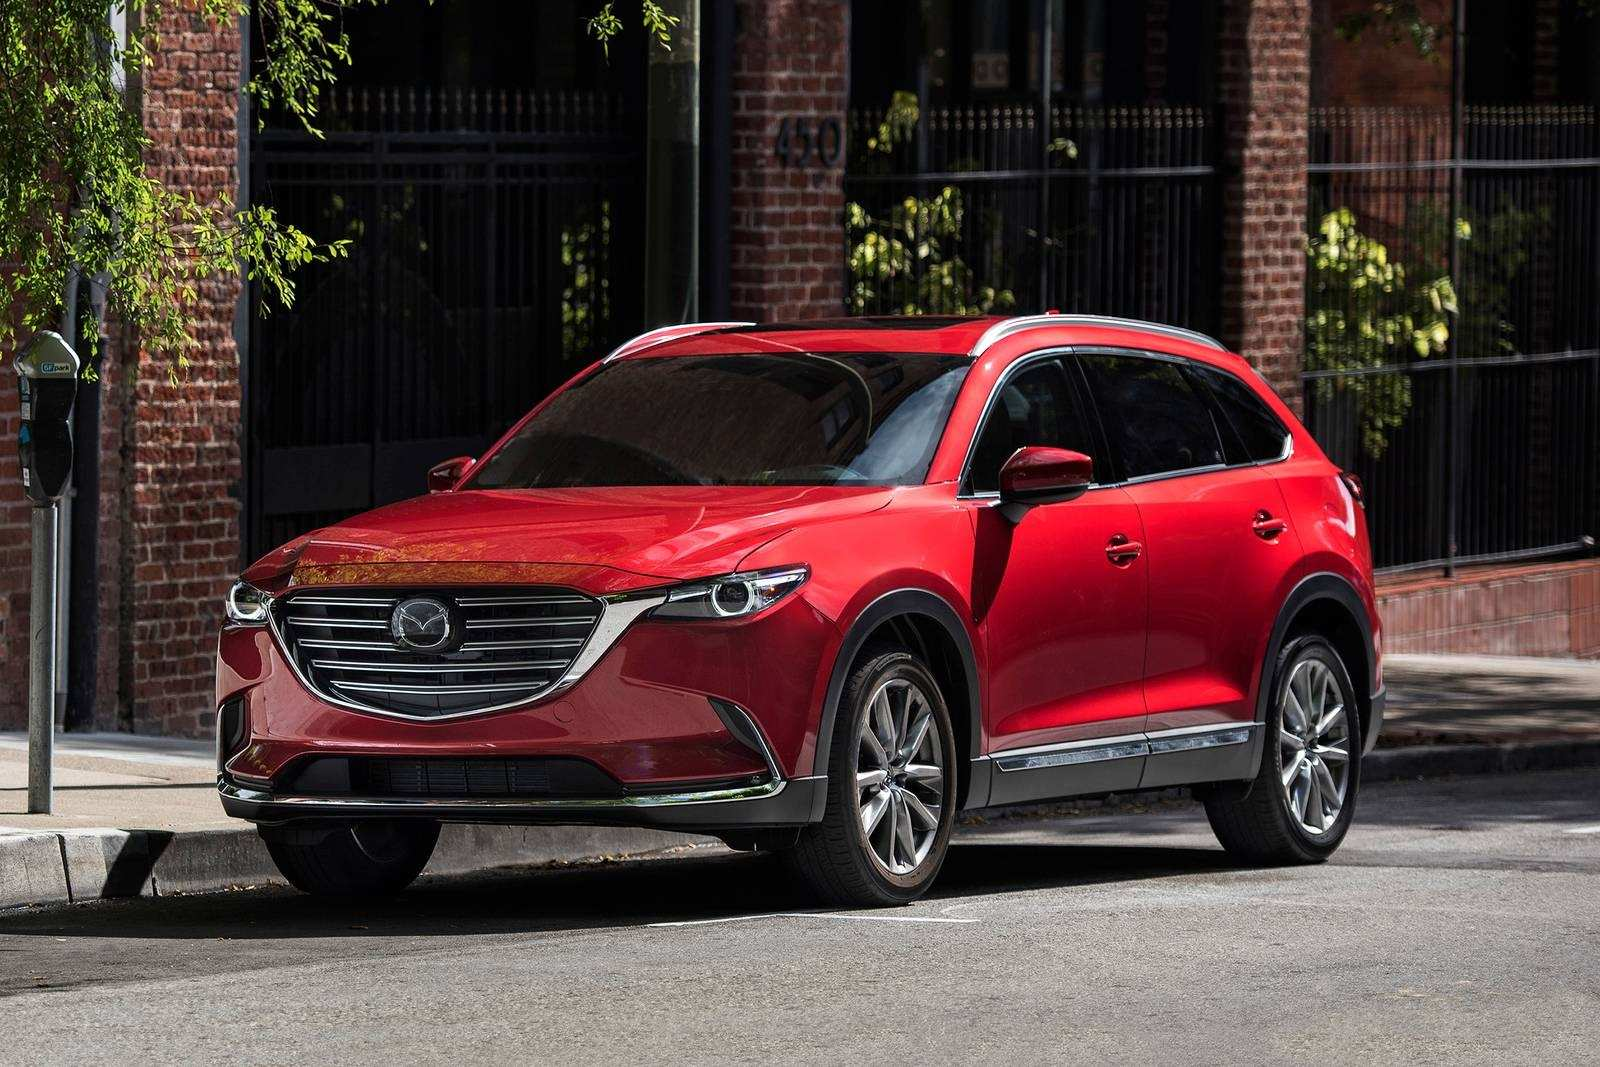 26 Best Review 2019 Mazda Cx 9 New Review by 2019 Mazda Cx 9